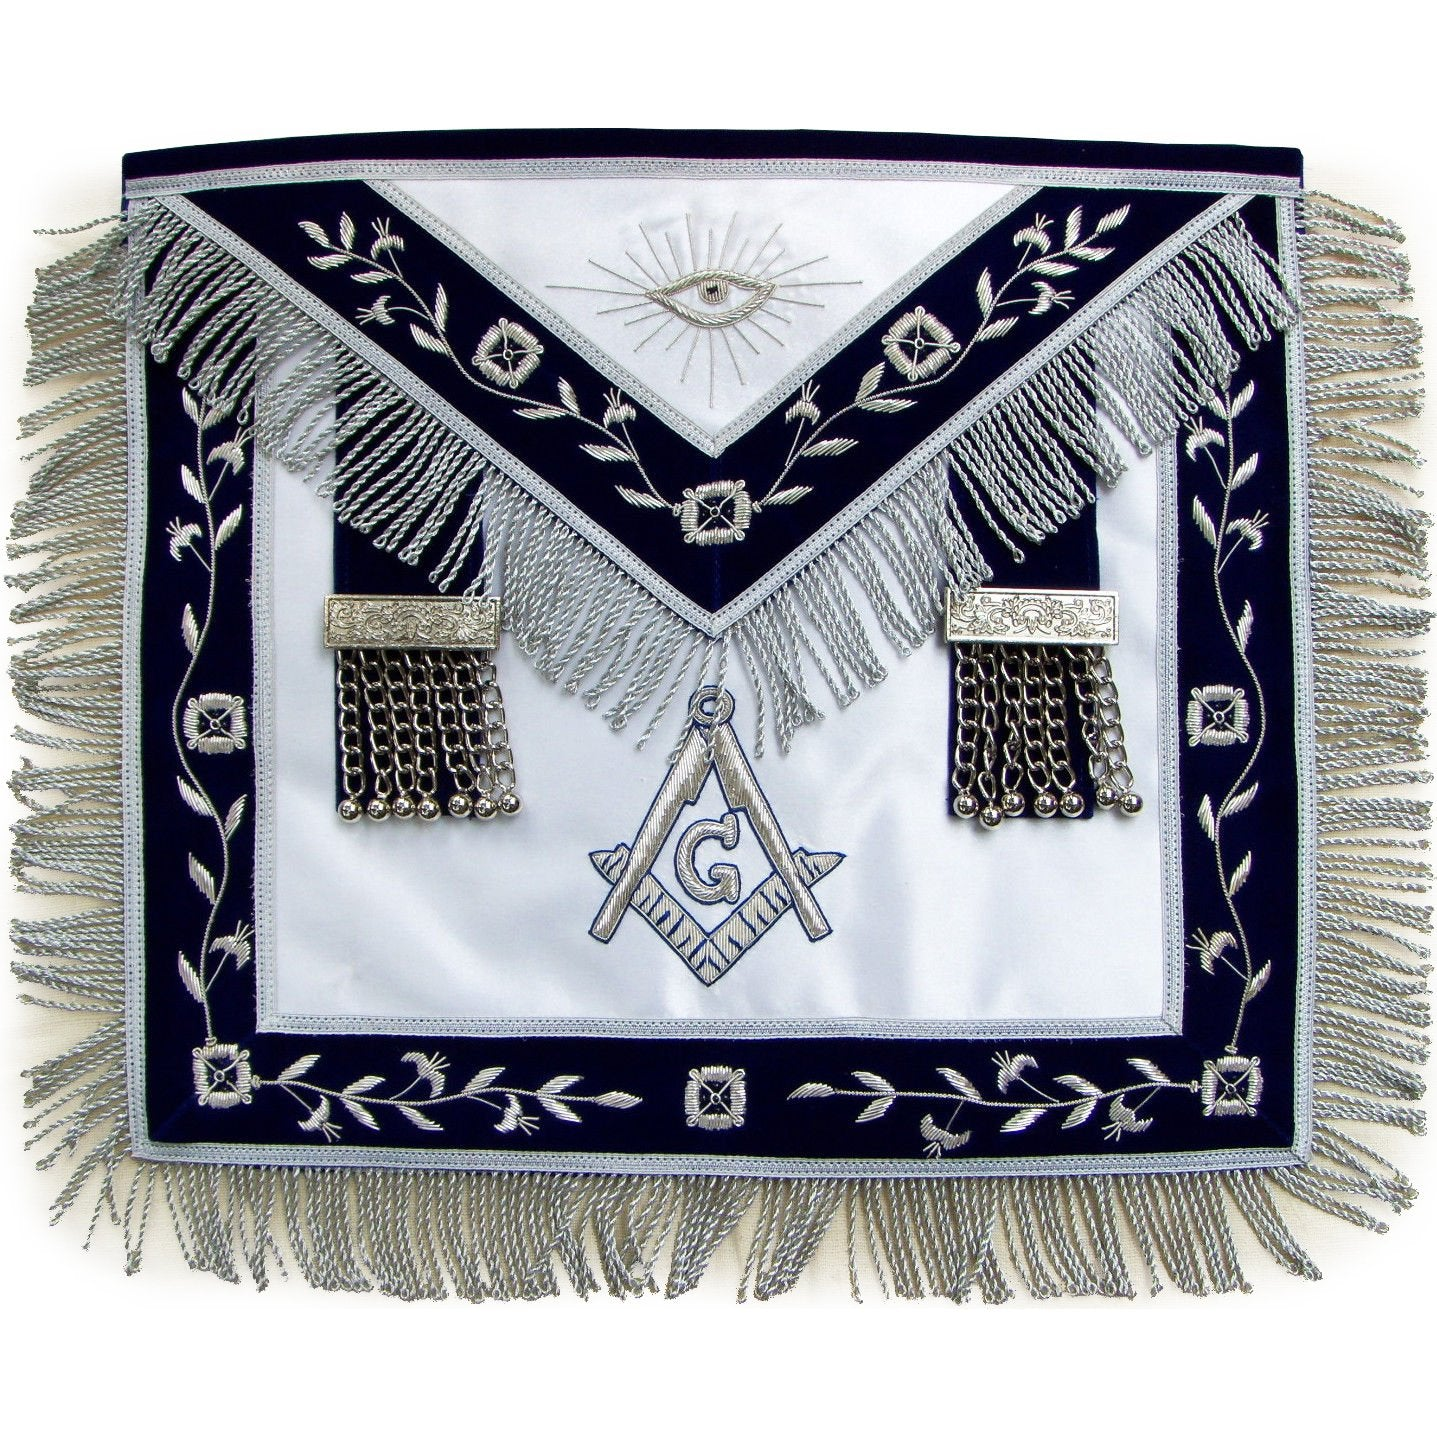 Masonic Master Mason Silver Bullion Hand Embroidered Apron Metal Tassels - Bricks Masons